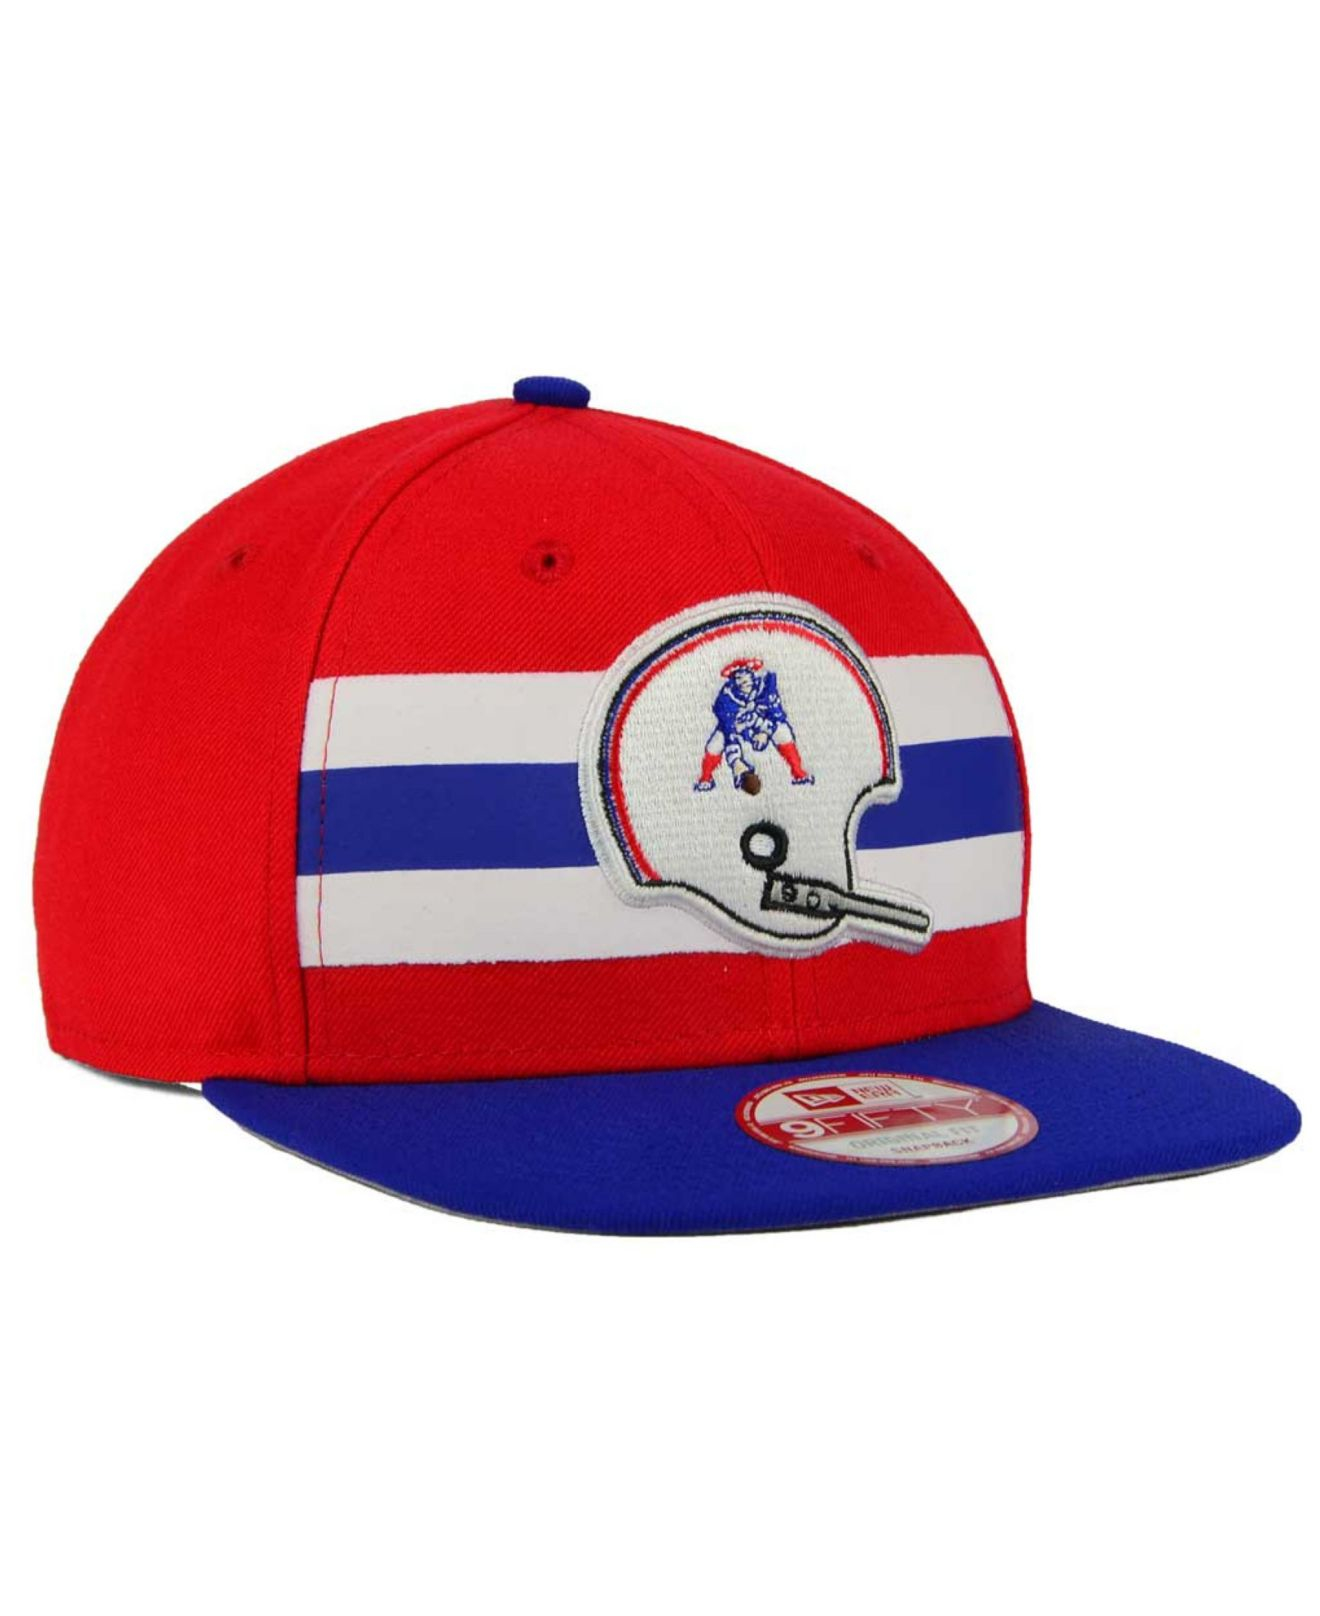 3cbcee9057f Lyst - KTZ New England Patriots Retro Striped 9fifty Snapback Cap in ...